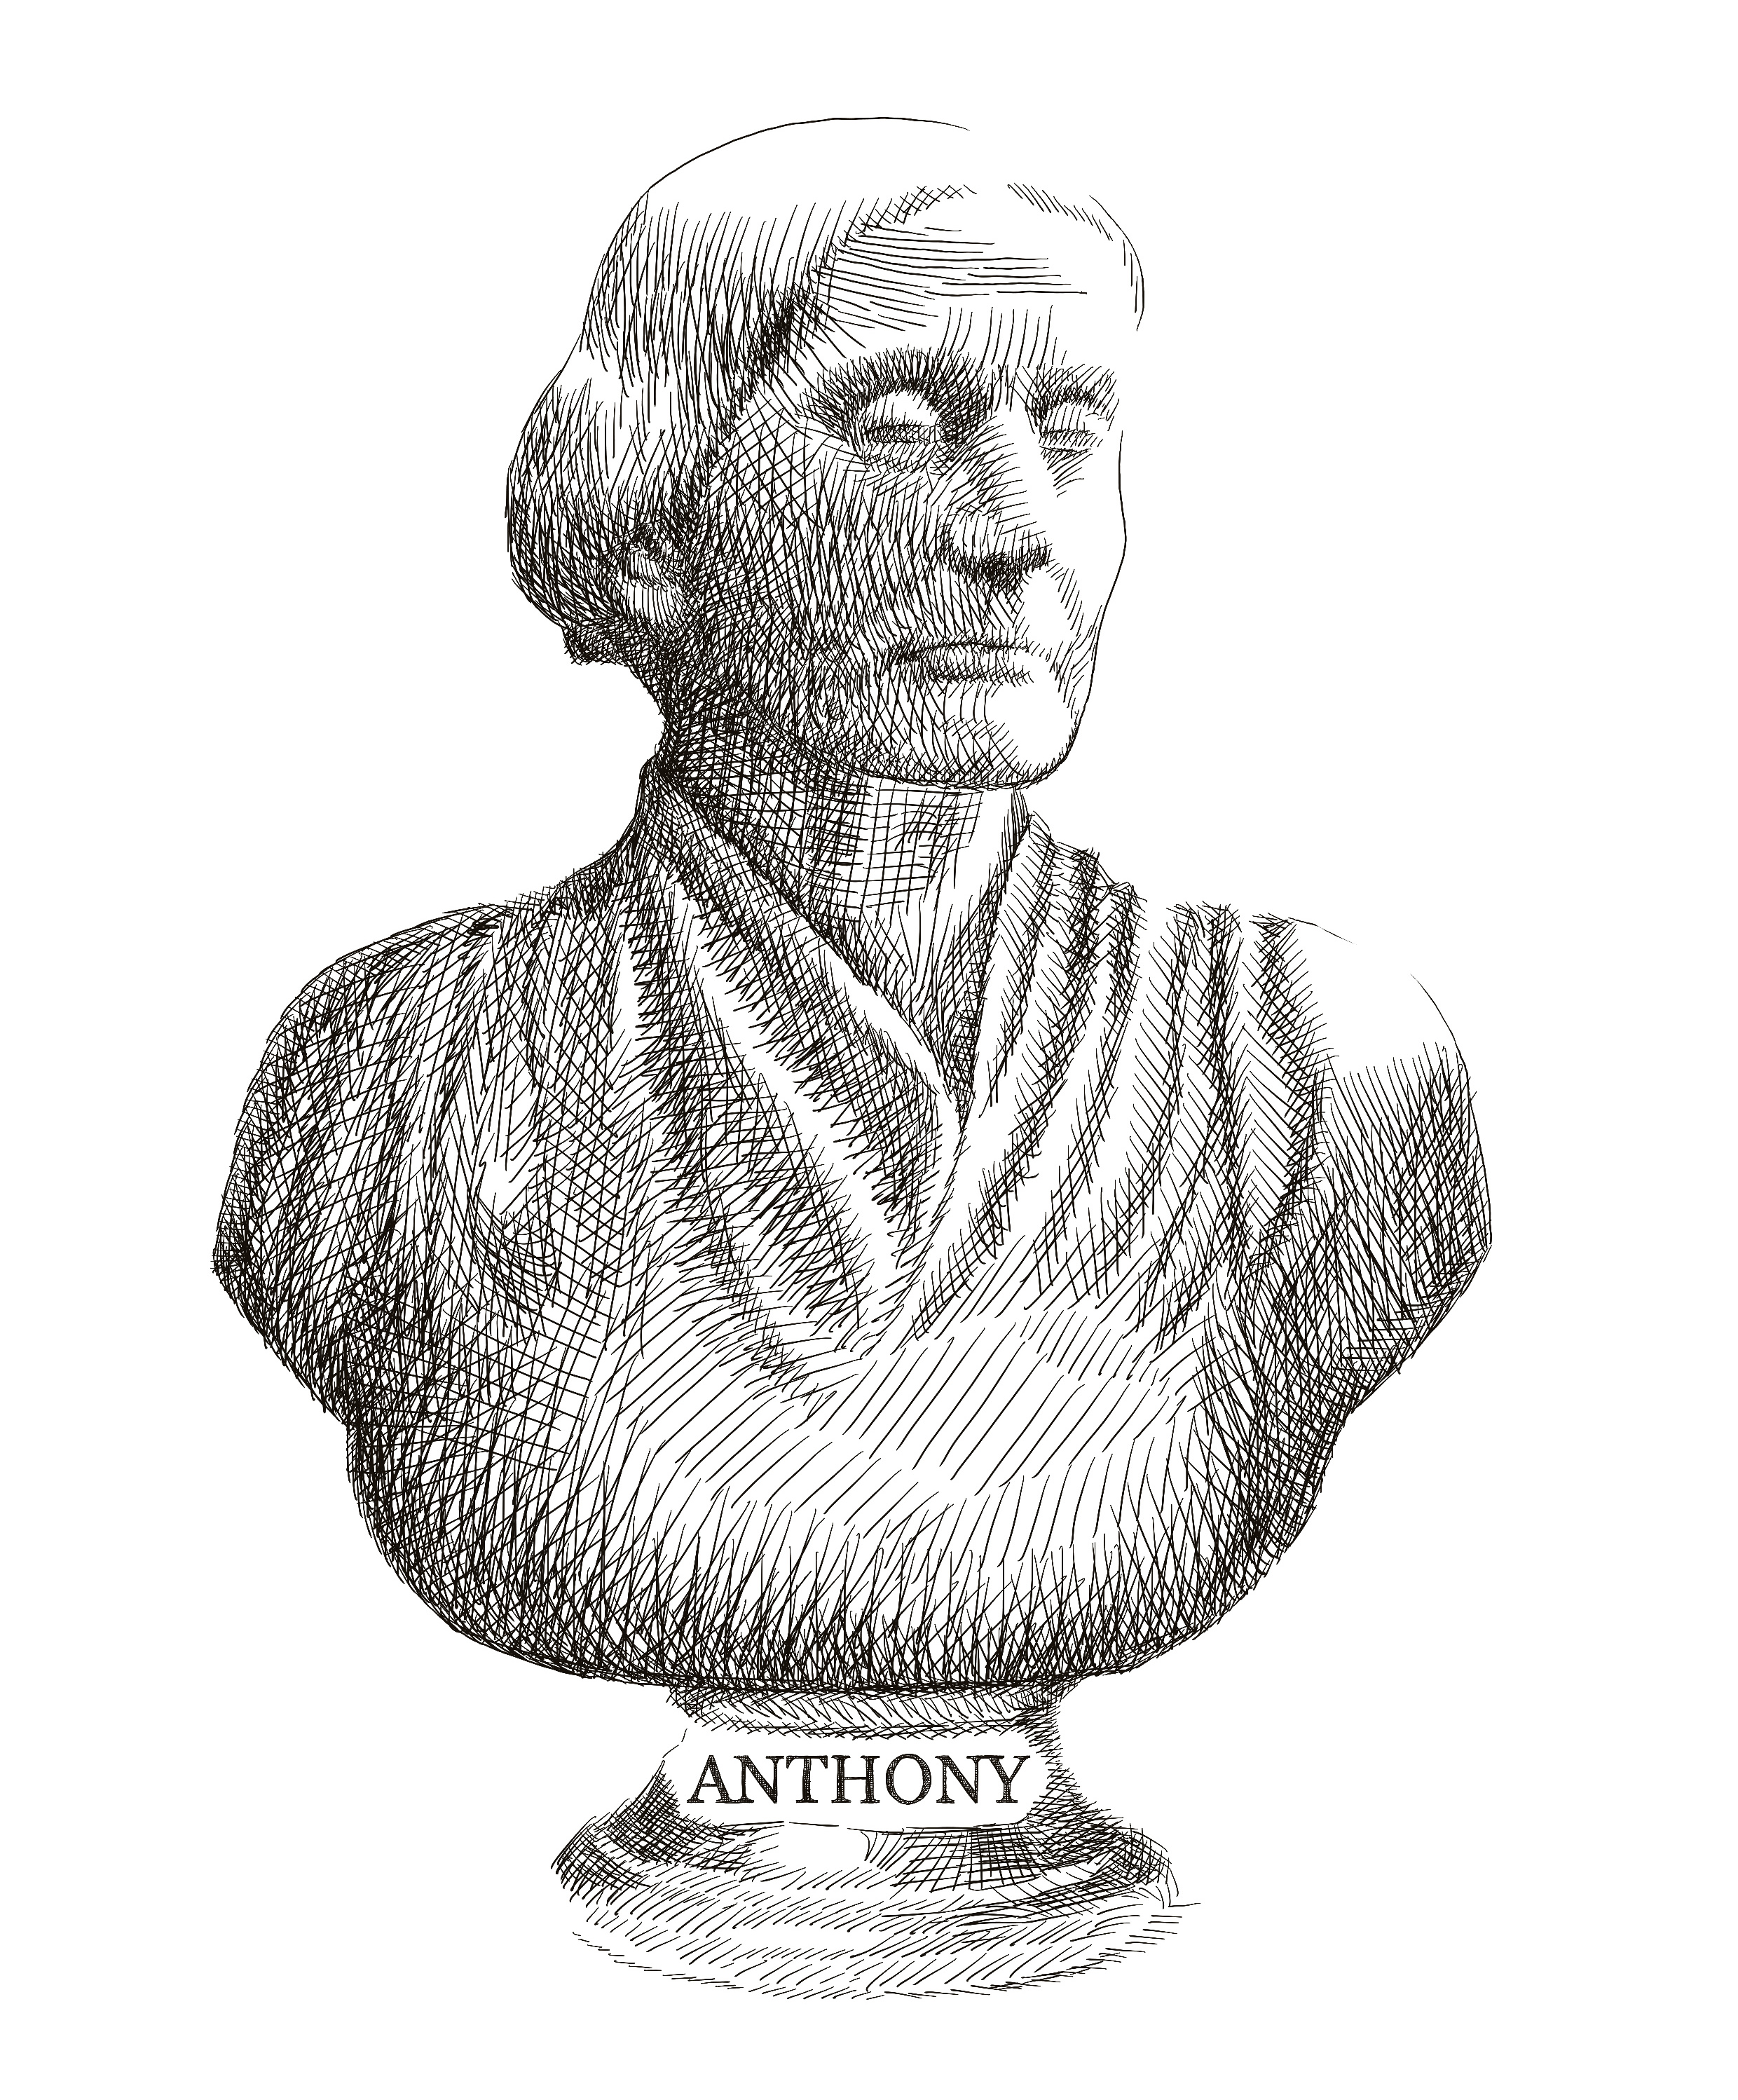 rhetorical analysis of susan b anthony s speech Susan b anthony (february 15, 1820 – march 13, 1906) was an american social  reformer and  in a speech in 1861, anthony said, let us open to the colored  man all our schools  her speech was entitled is it a crime for a us citizen to  vote  while the big audience, catching the spirit of the scene, wildly  applauded.